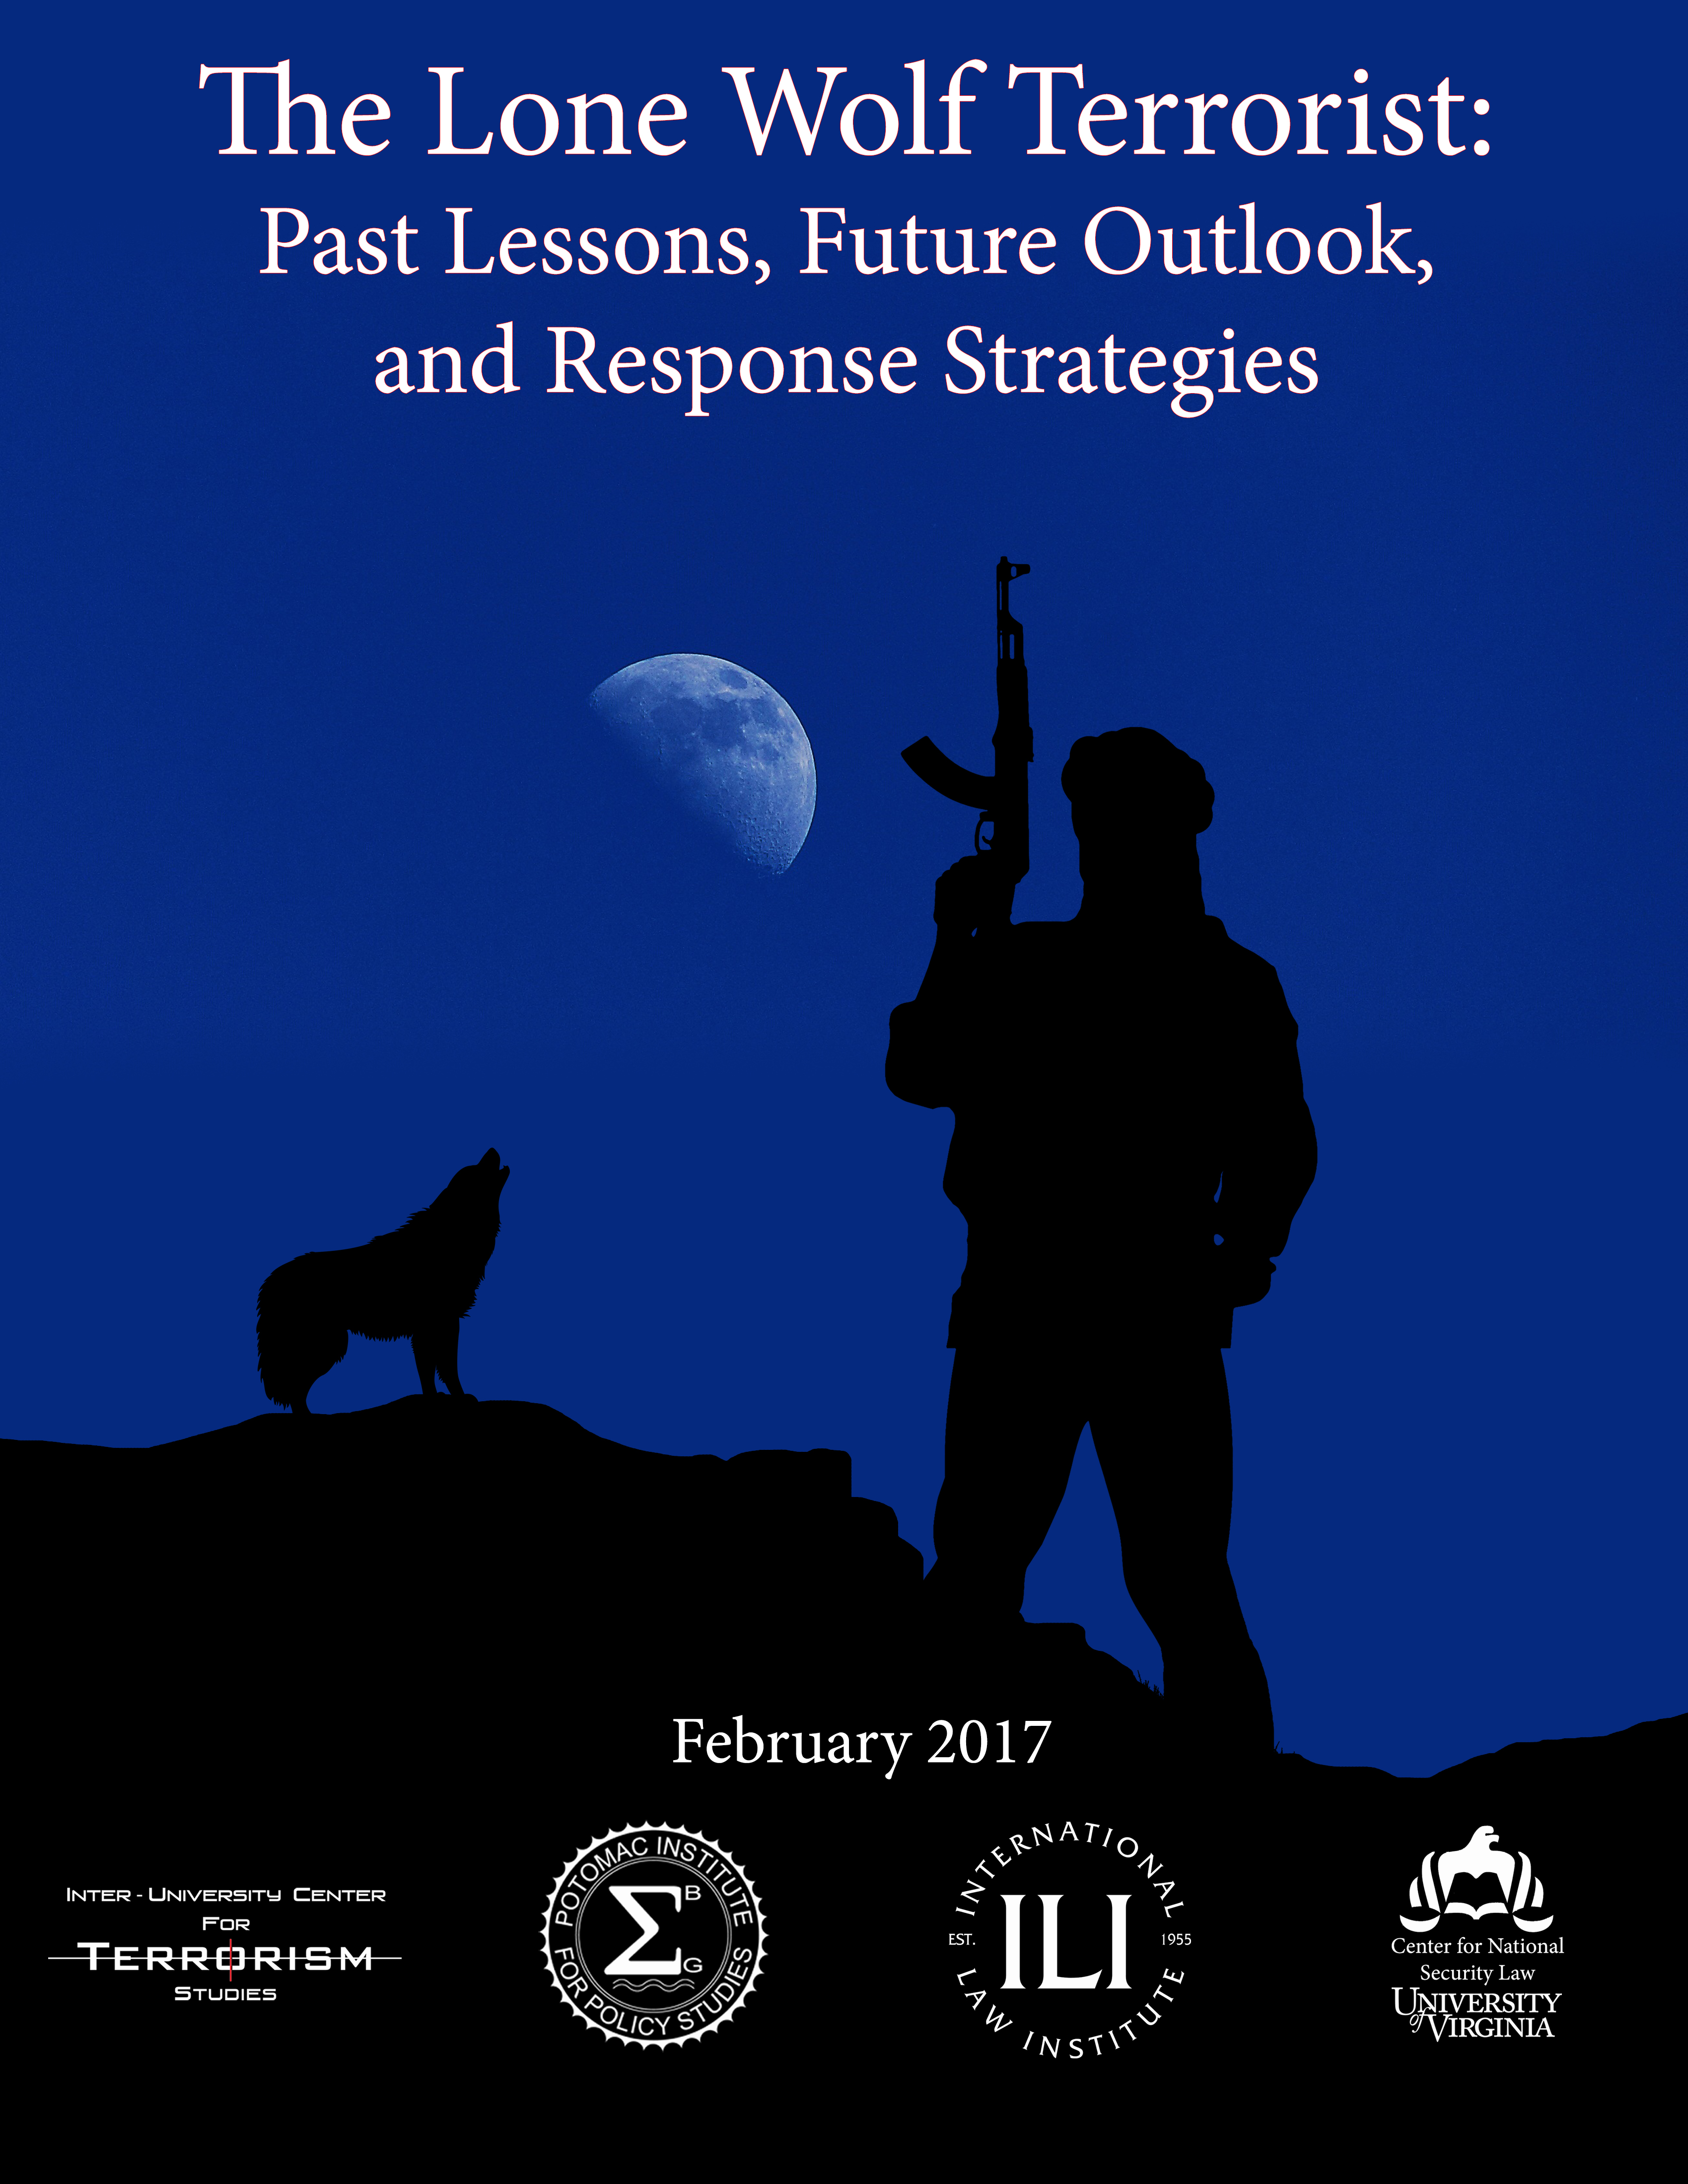 The Lone Wolf Terrorist: Past Lessons, Future Outlook, and Response Strategies